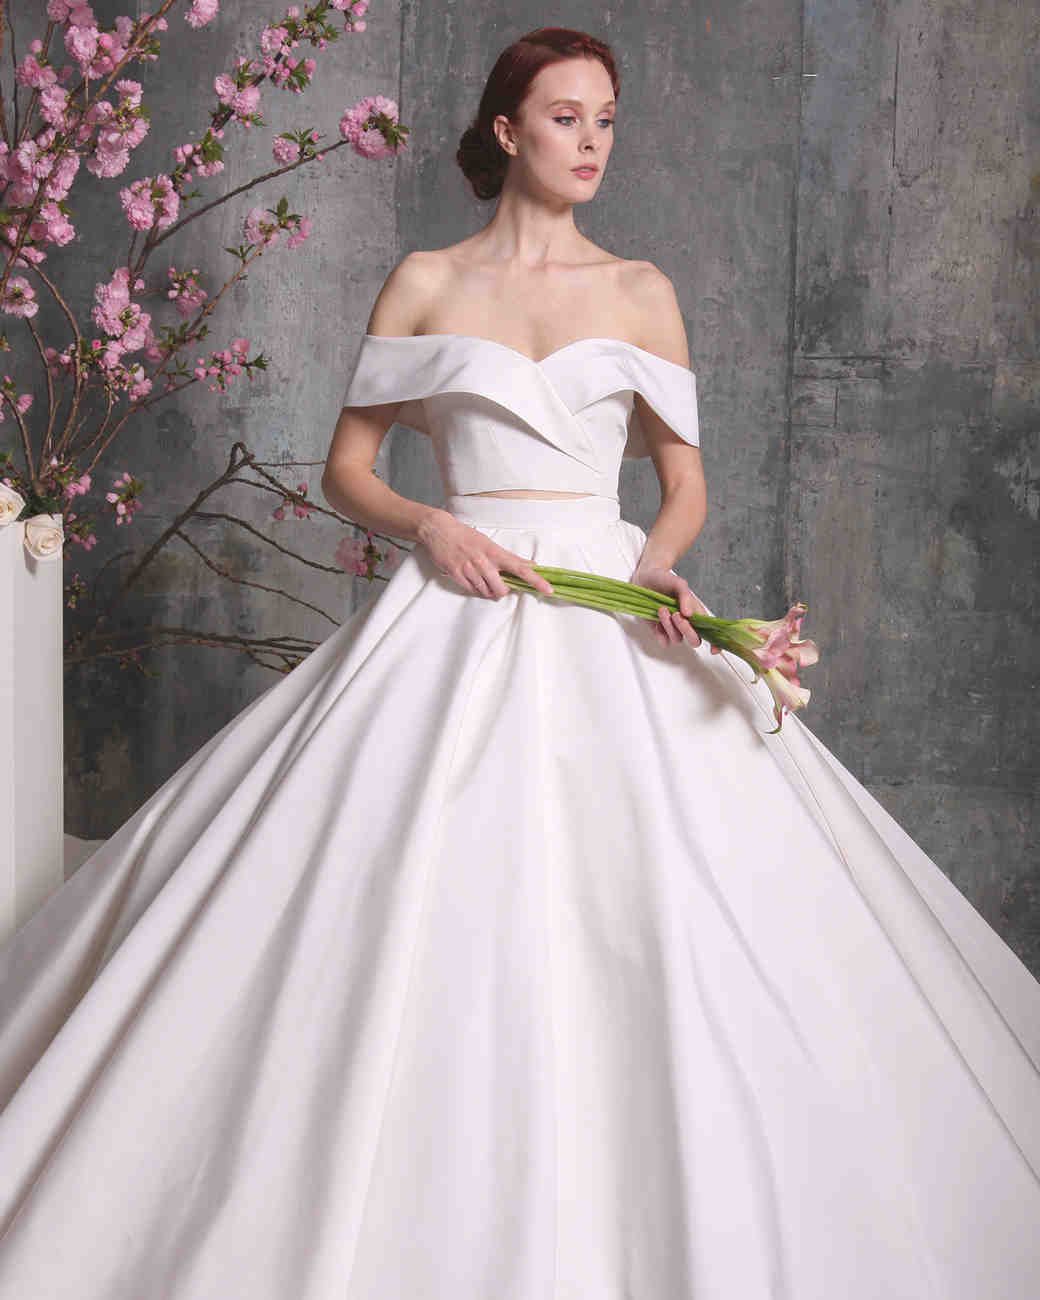 Wedding Gowns: 50 Two-Piece Wedding Dresses